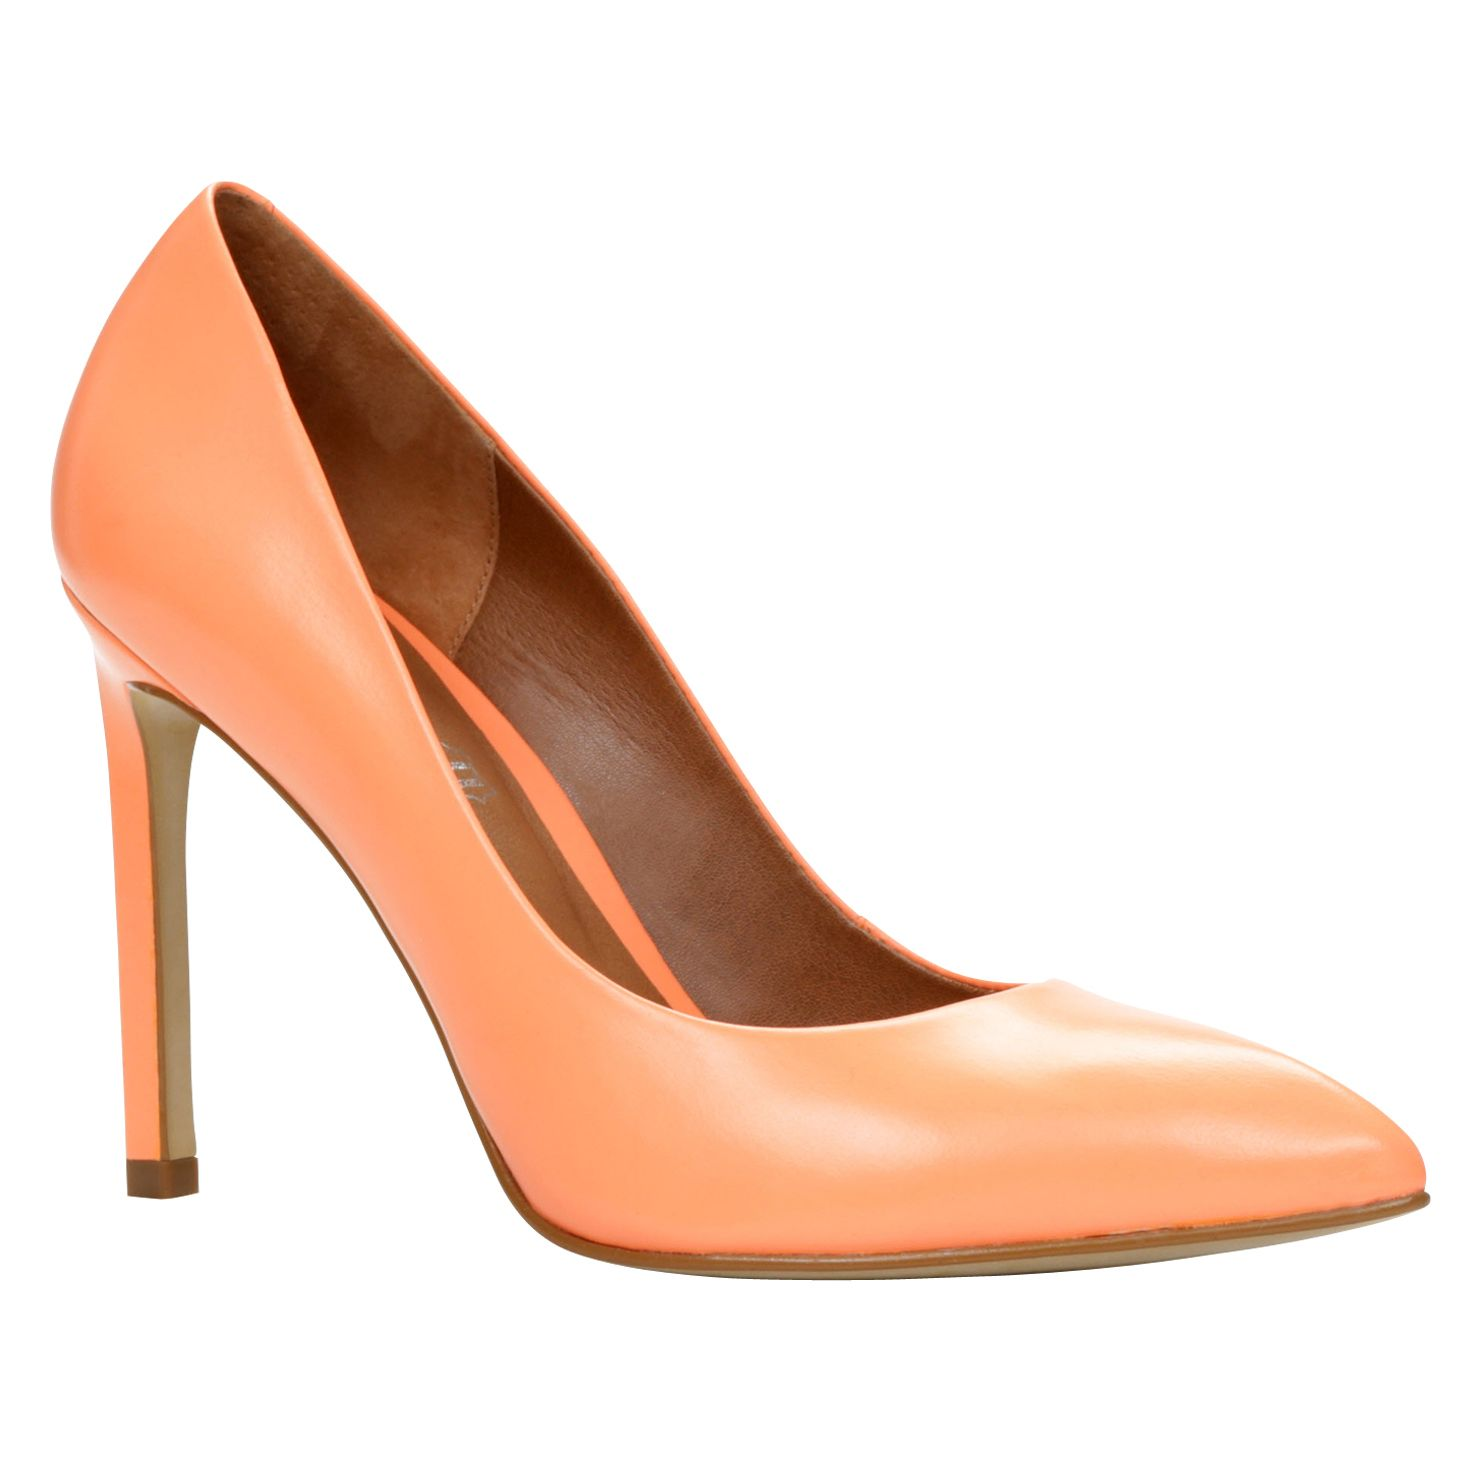 Edilania pointed toe court shoes